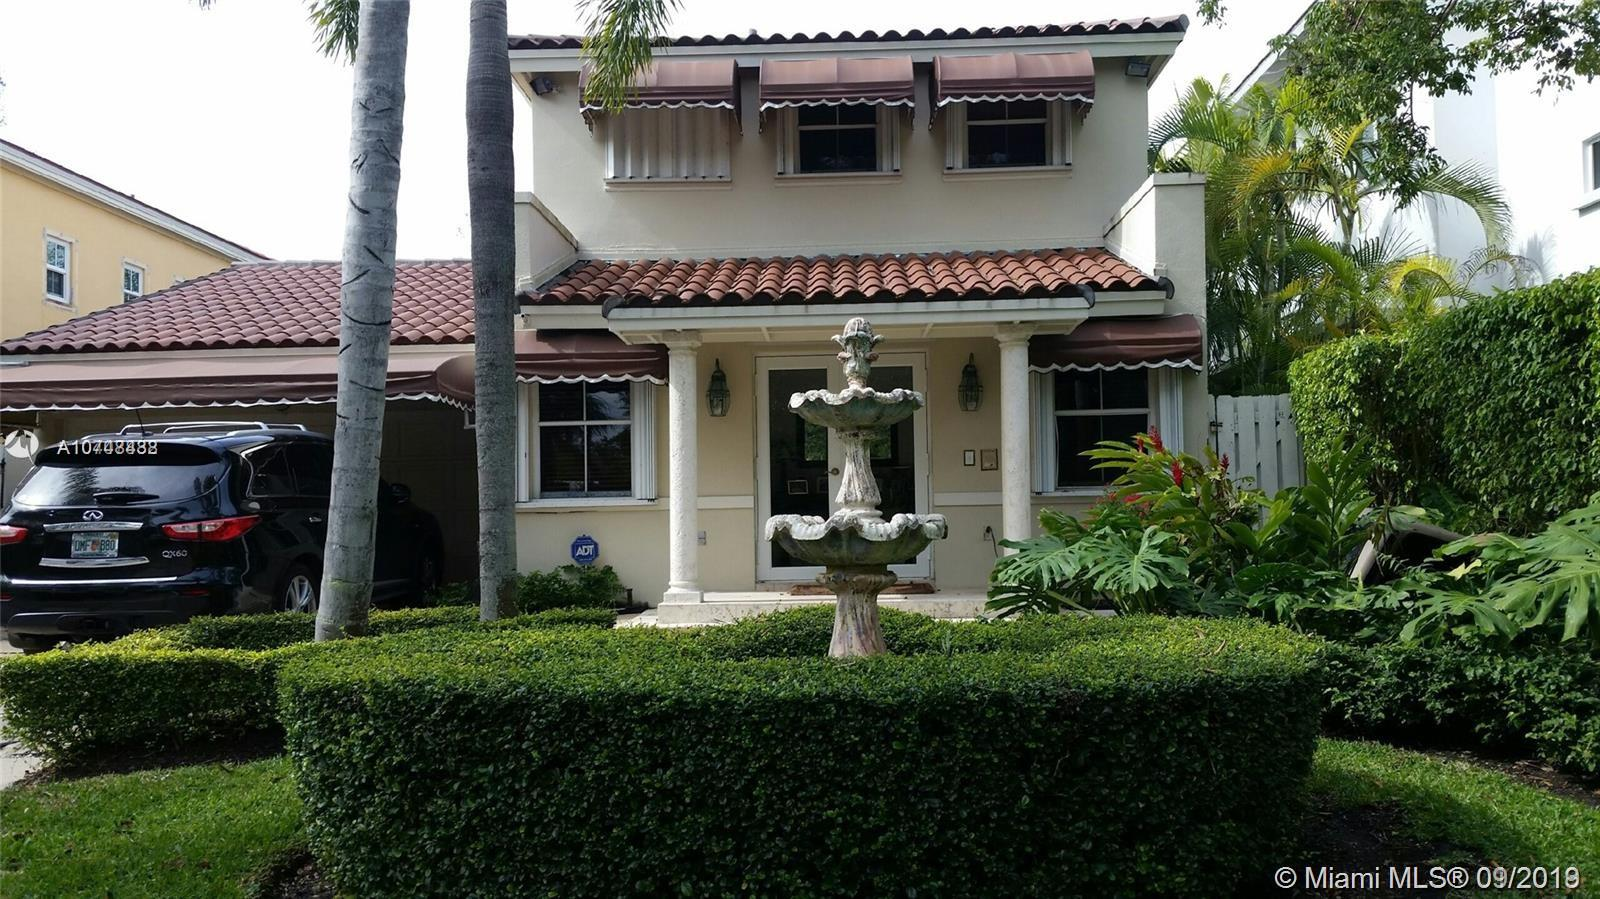 7700 S W schoolhouse Rd (52nd Ave) #. For Sale A10748488, FL